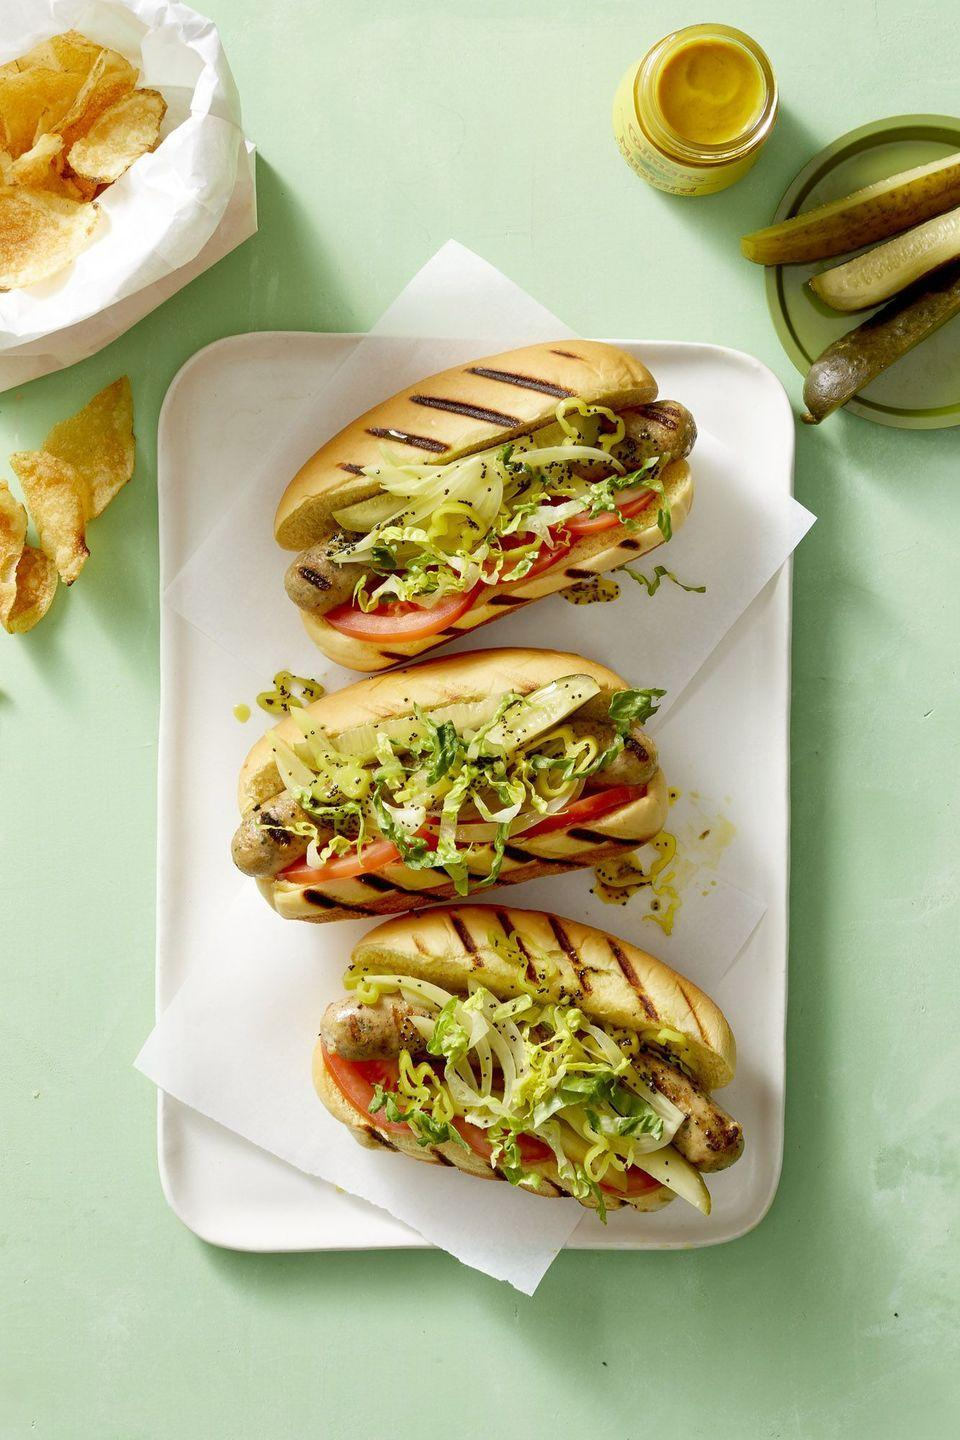 """<p>No barbecue is complete without some hot dogs and these Chicago-style ones are made with chicken rather than beef.</p><p><em><strong><a href=""""https://www.womansday.com/food-recipes/food-drinks/a22687839/chicago-style-chicken-dogs-recipe/"""" rel=""""nofollow noopener"""" target=""""_blank"""" data-ylk=""""slk:Get the recipe for Chicago-Style Chicken Dogs."""" class=""""link rapid-noclick-resp"""">Get the recipe for Chicago-Style Chicken Dogs.</a></strong></em></p>"""